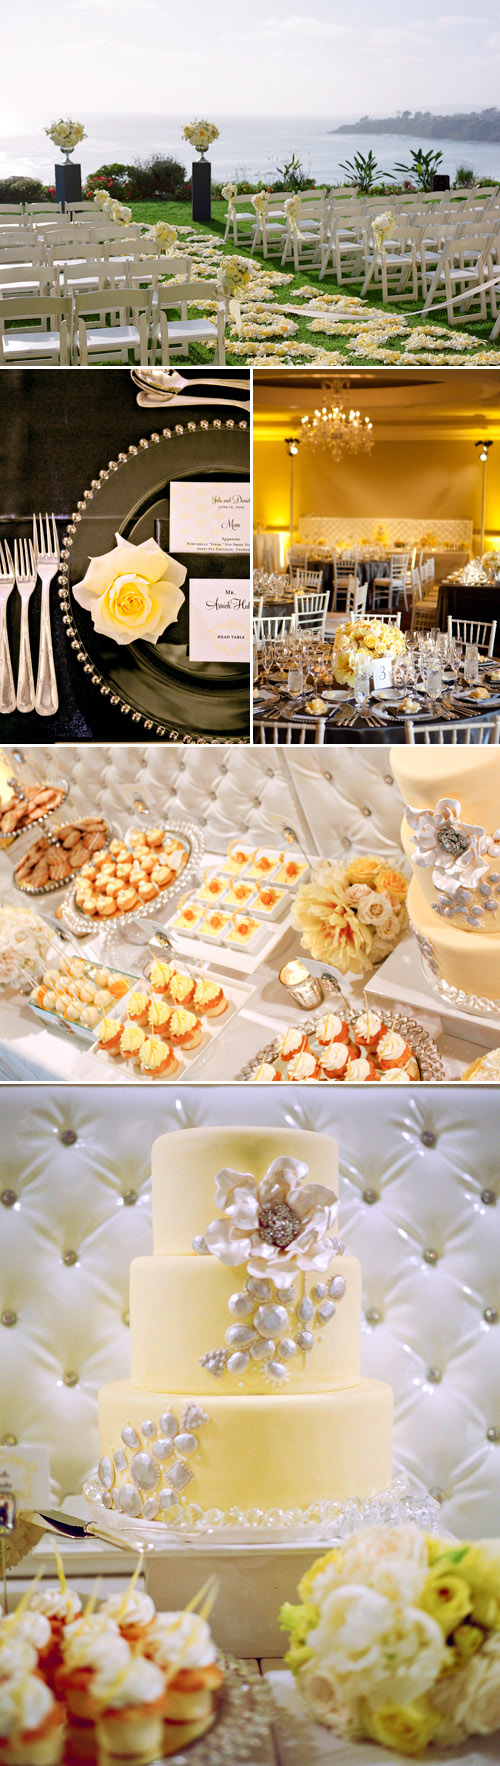 wedding design by Details Details Wedding and Event Planning, images by Braedon Photography